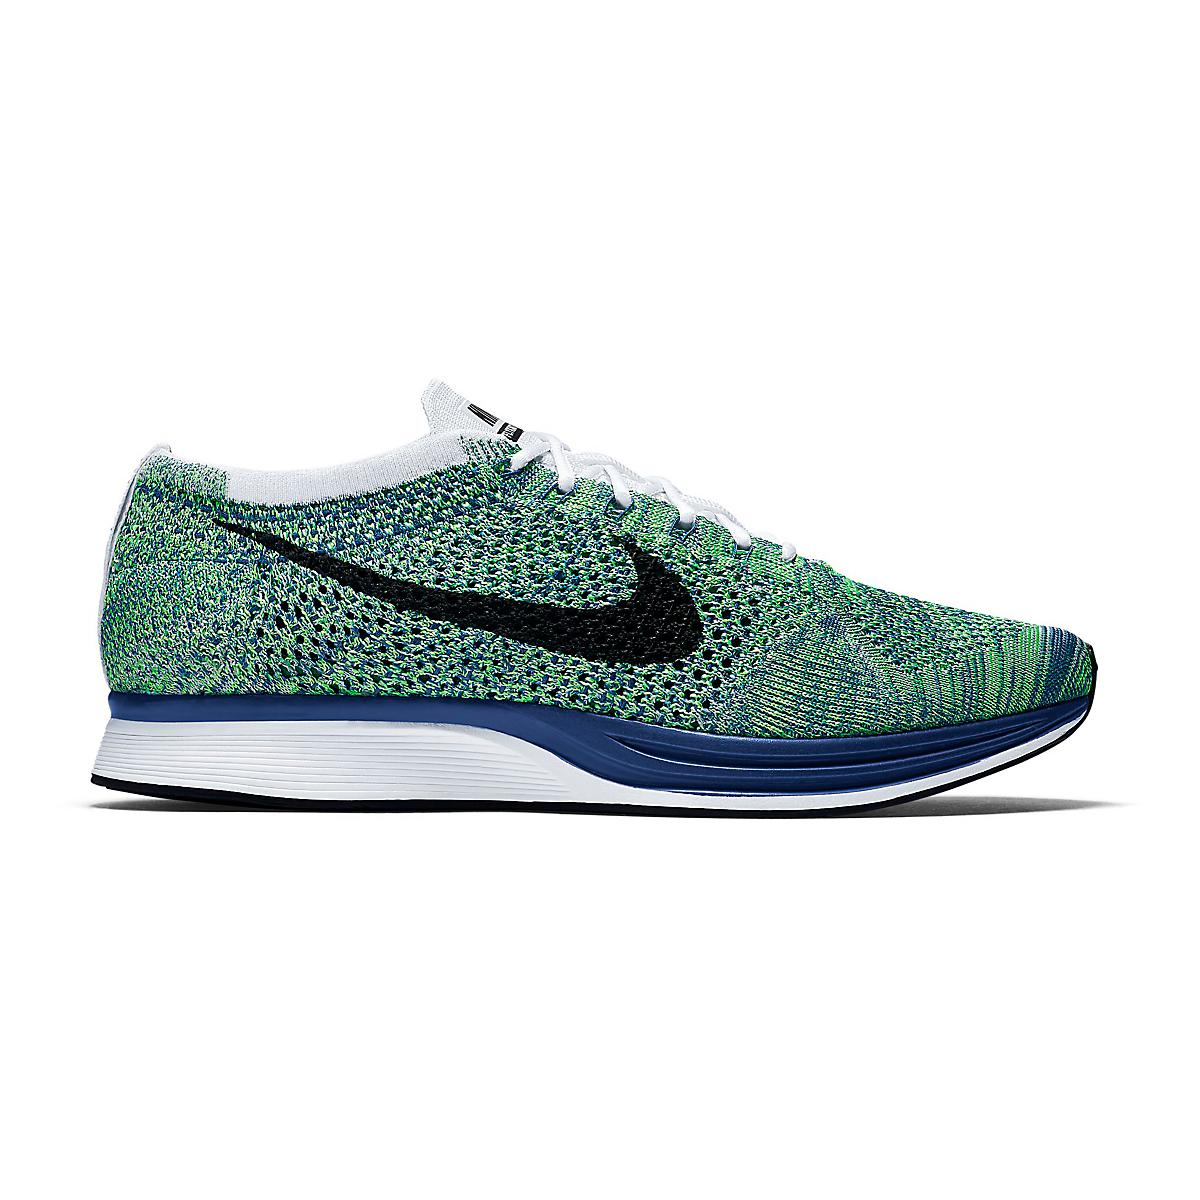 0bf66286b572 Nike Flyknit Racer at Road Runner Sports